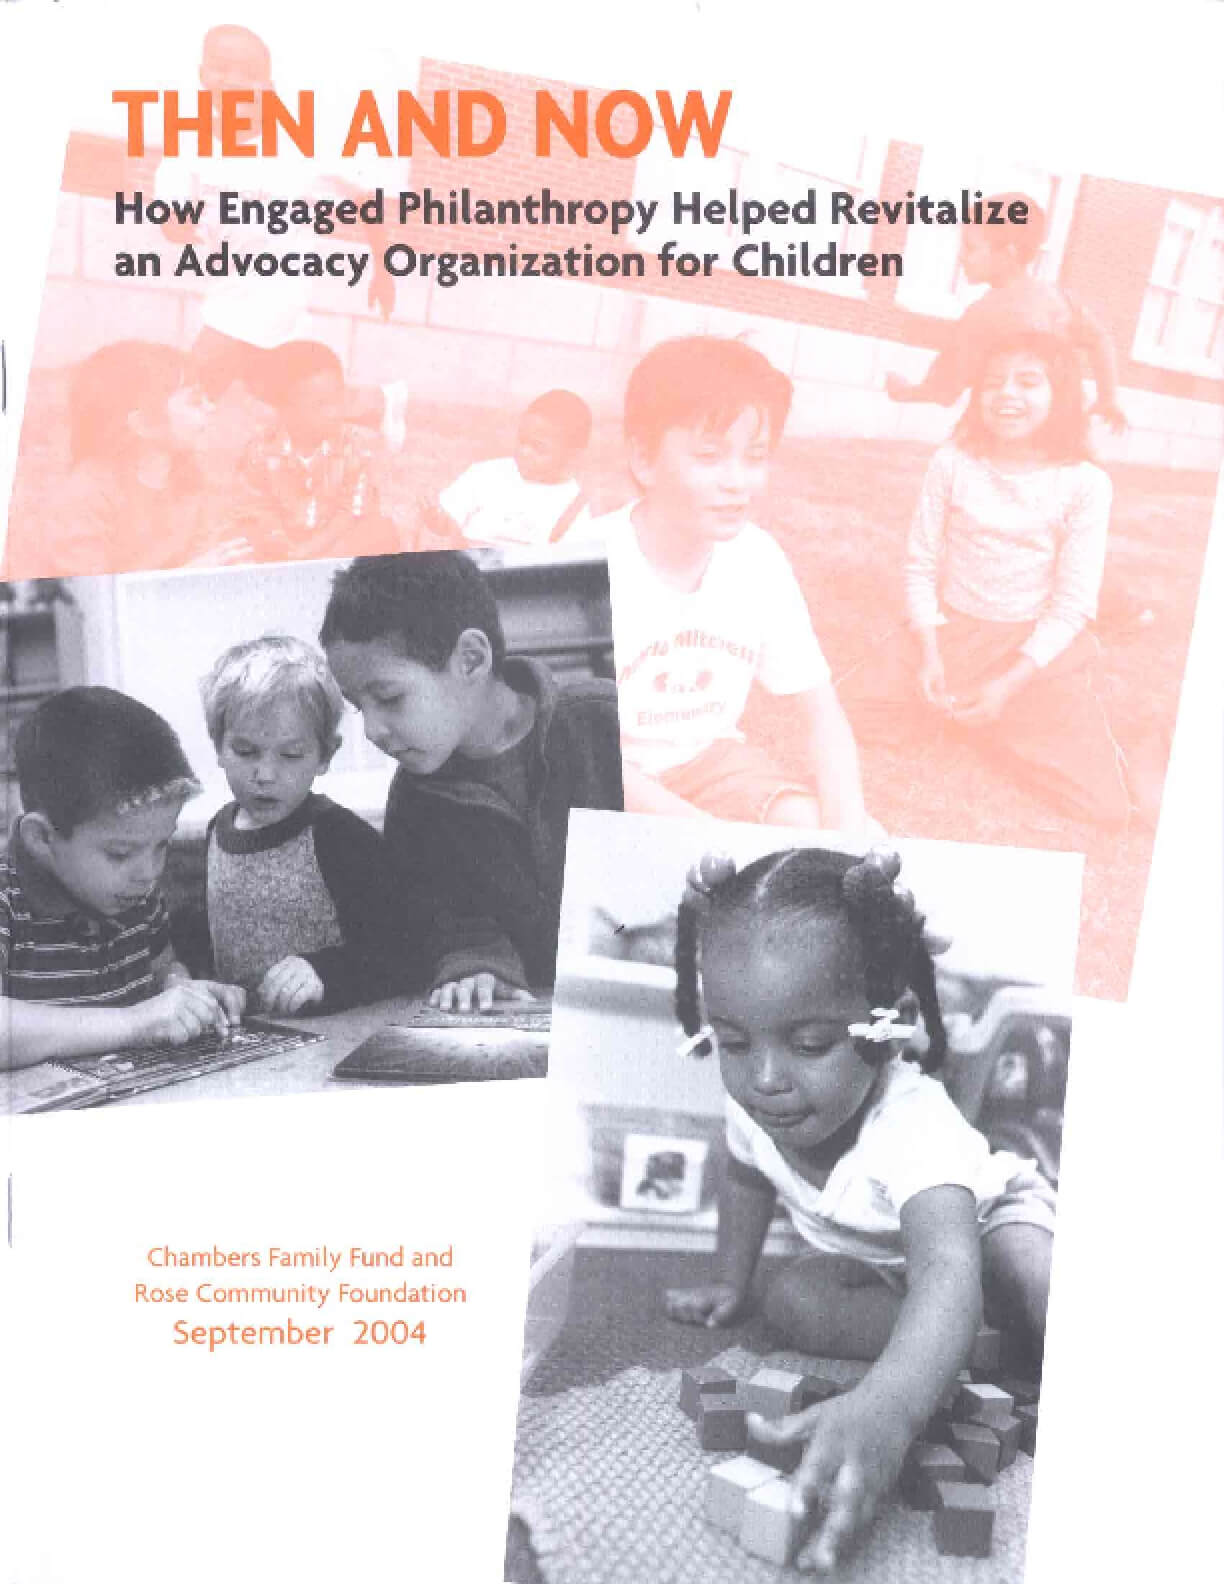 Then And Now: How Engaged Philanthropy Helped Revitalize an Advocacy Organization for Children